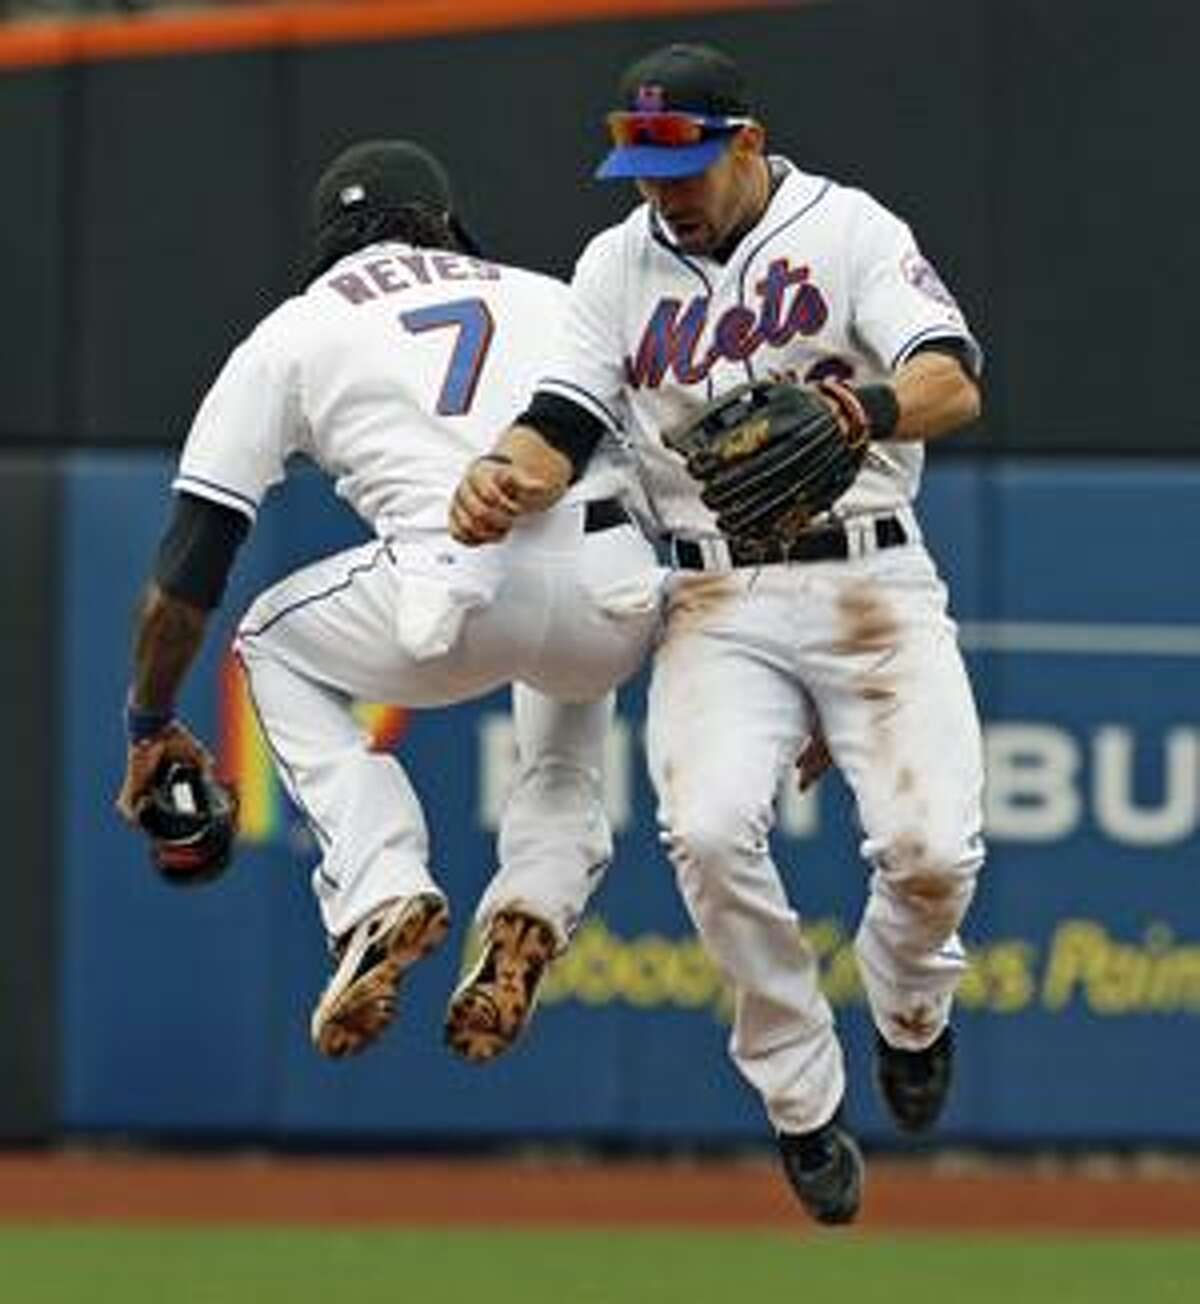 New York Mets' Jose Reyes, left, and Angel Pagan celebrate the Mets 7-3 victory over the Los Angeles Dodgers in a baseball game at Citi Field in New York, Wednesday, April 28, 2010. (AP Photo/Kathy Willens)